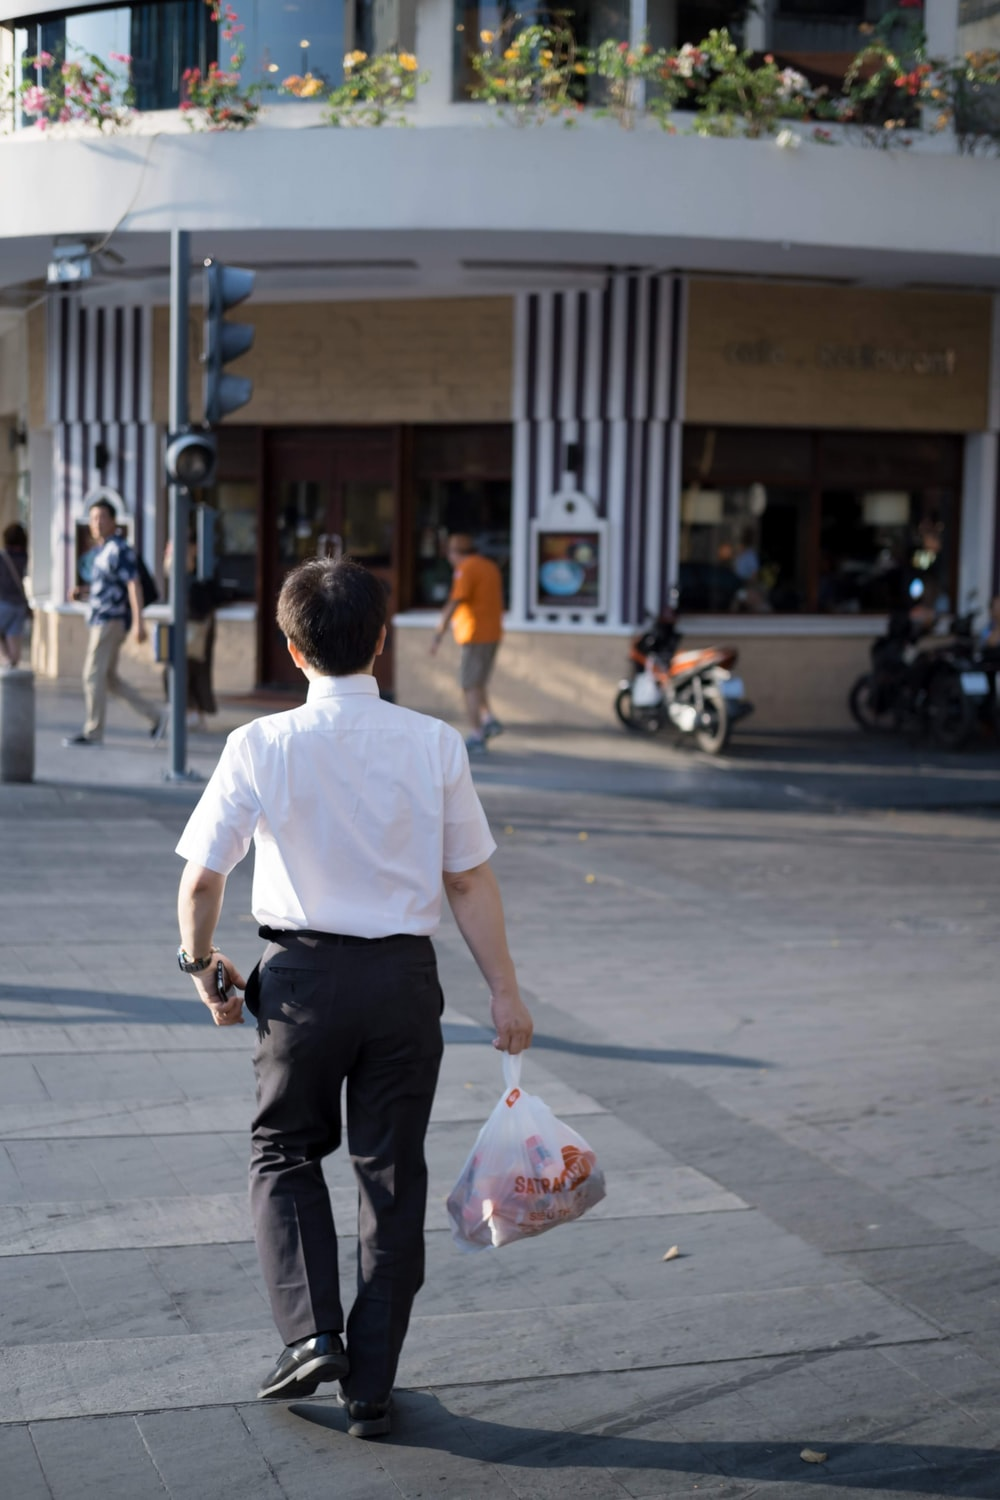 man holding plastic bag while walking at middle of street